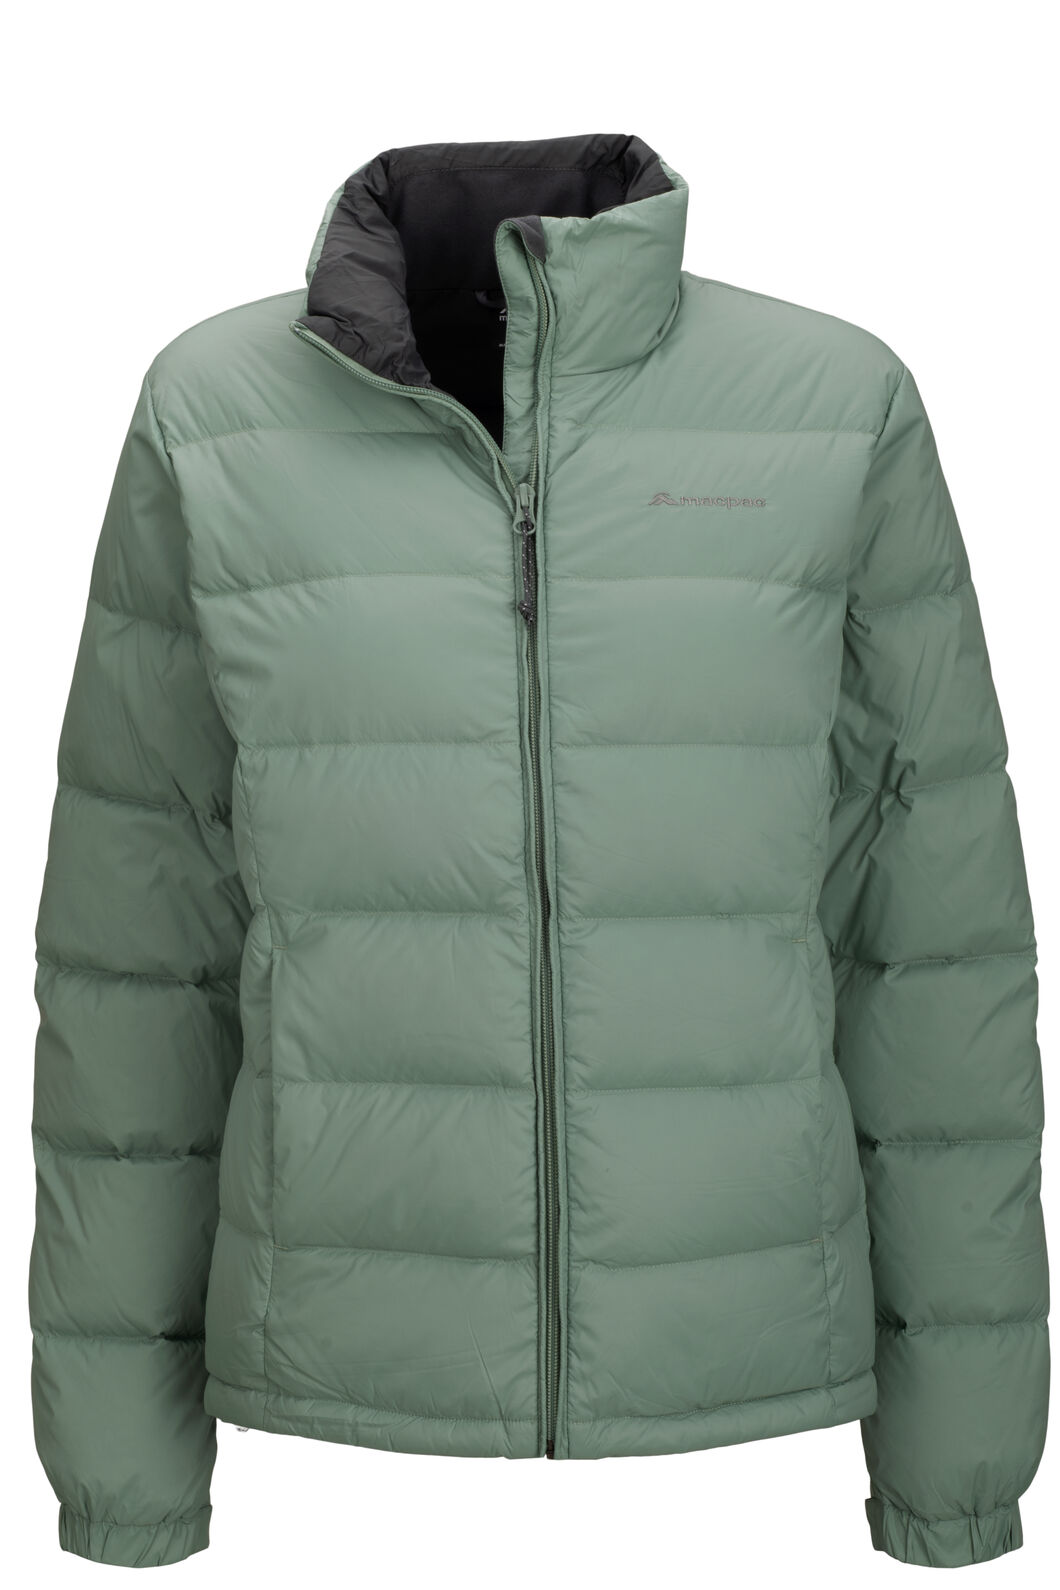 Macpac Halo Down Jacket — Women's, Green Bay, hi-res